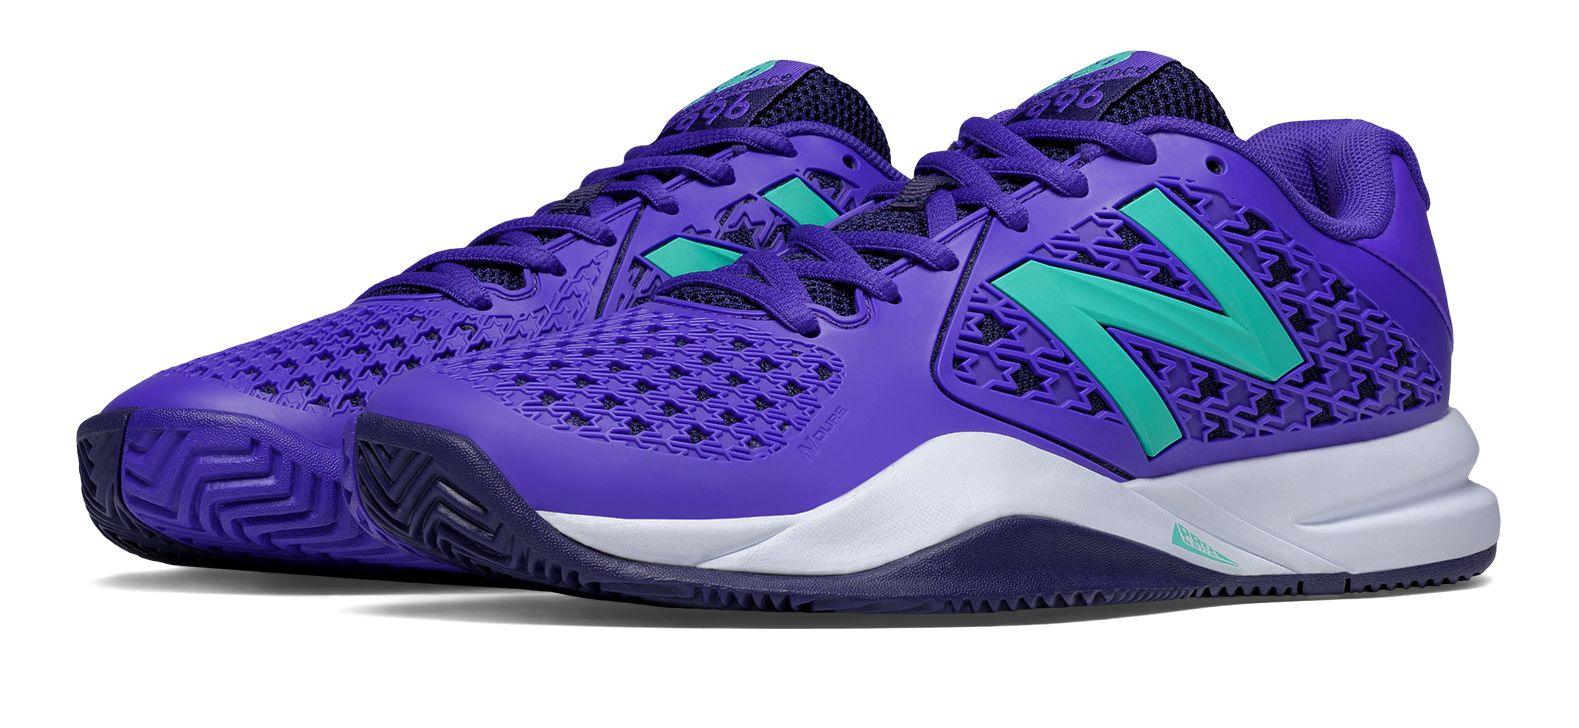 NB New Balance 996v2, Purple with Teal